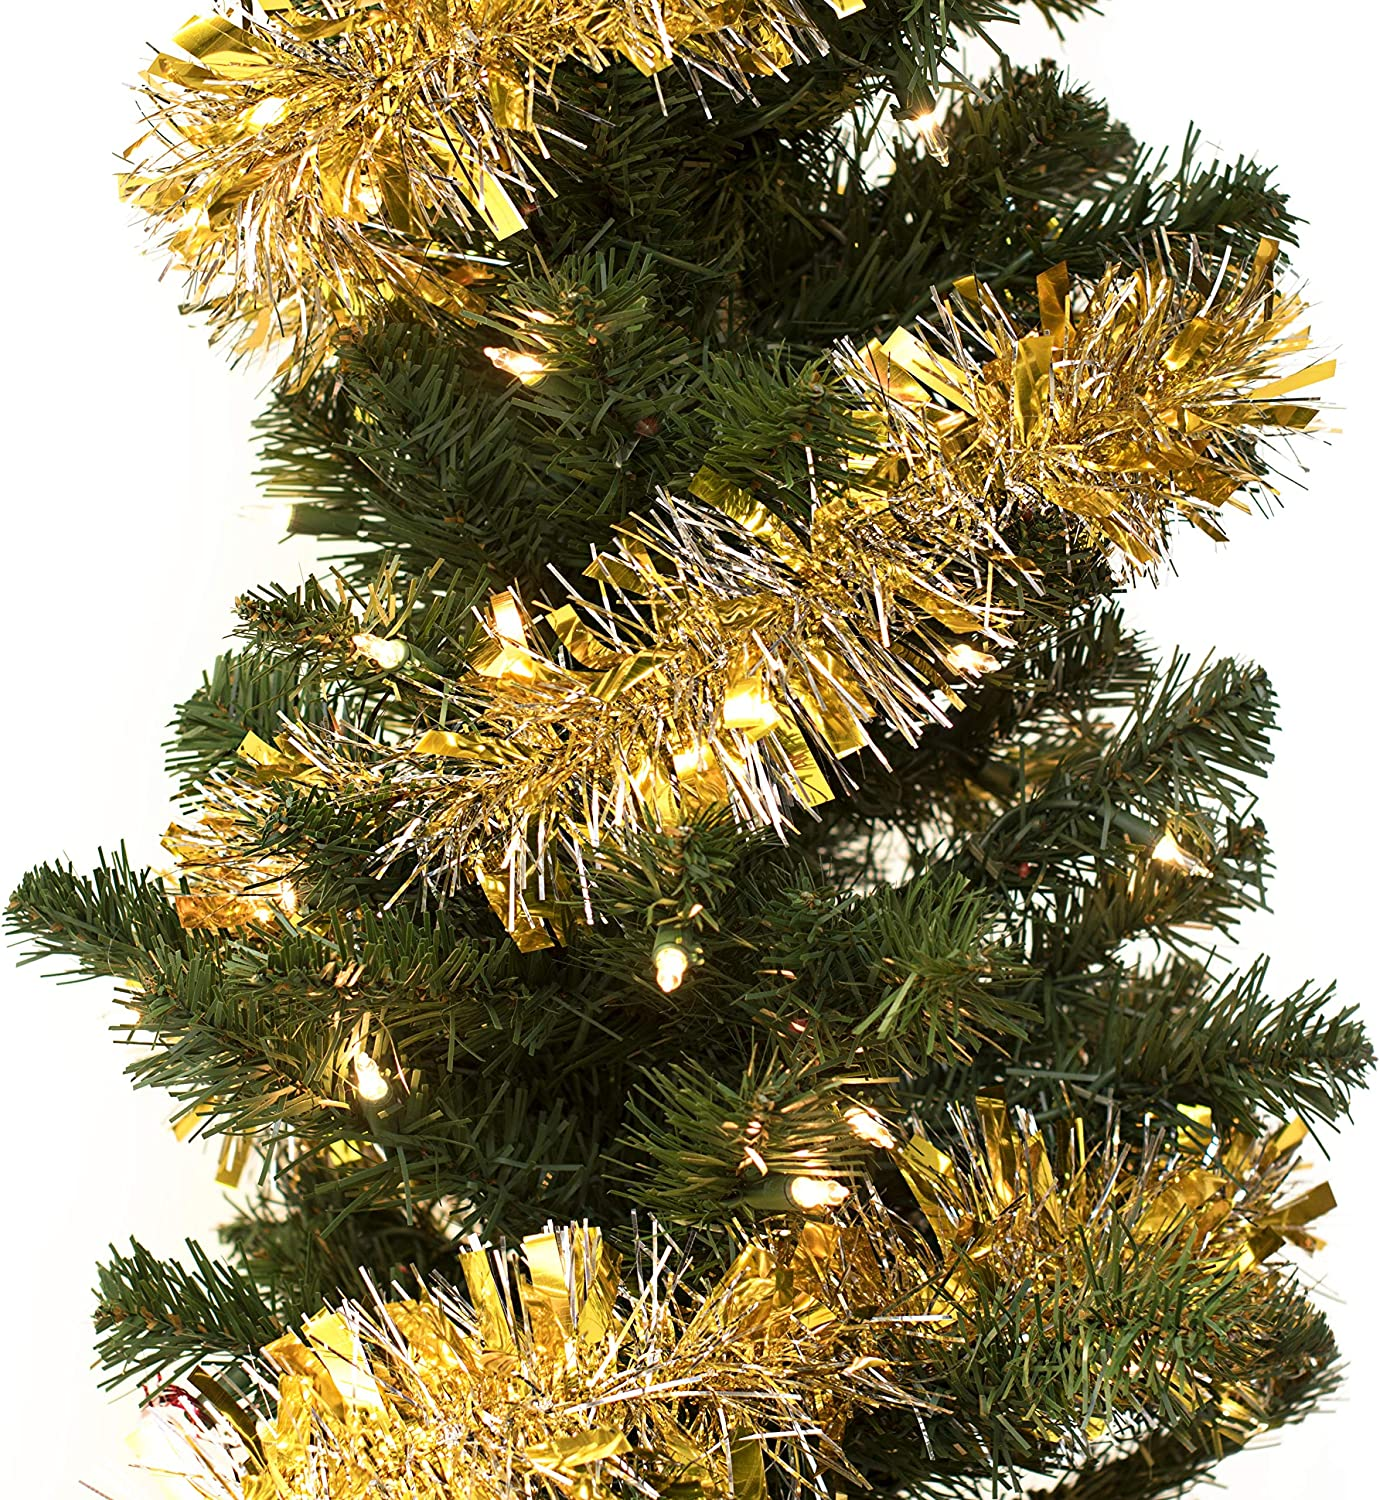 Andersons Black and Gold Metallic Tinsel Twist Garland 4 inches Wide x 25 ft Long